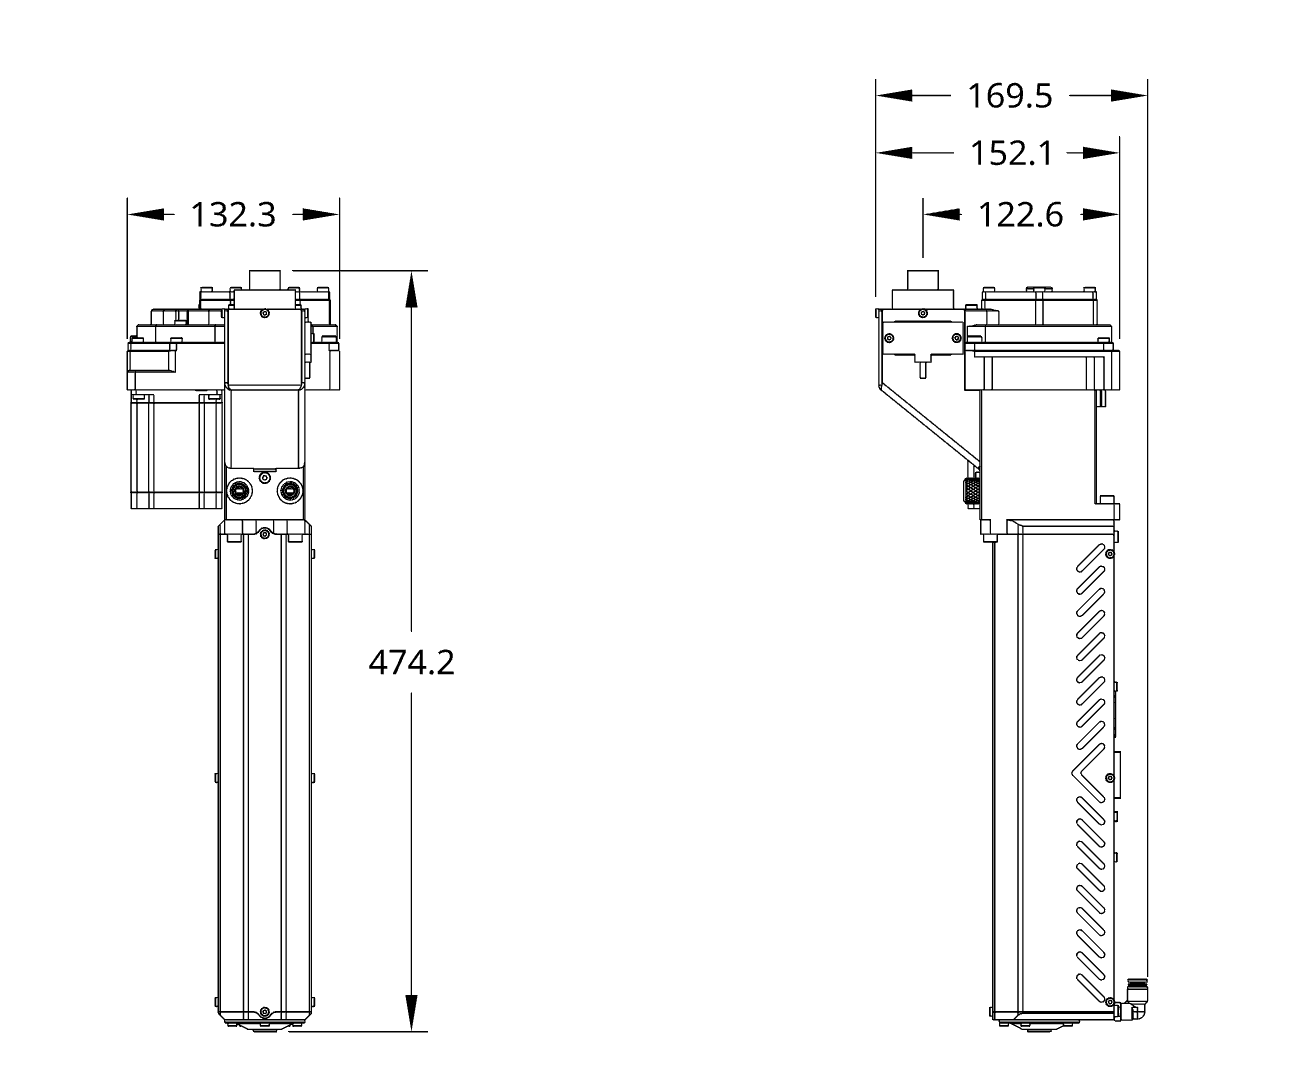 Pulsar™ Extruder Technical Drawing